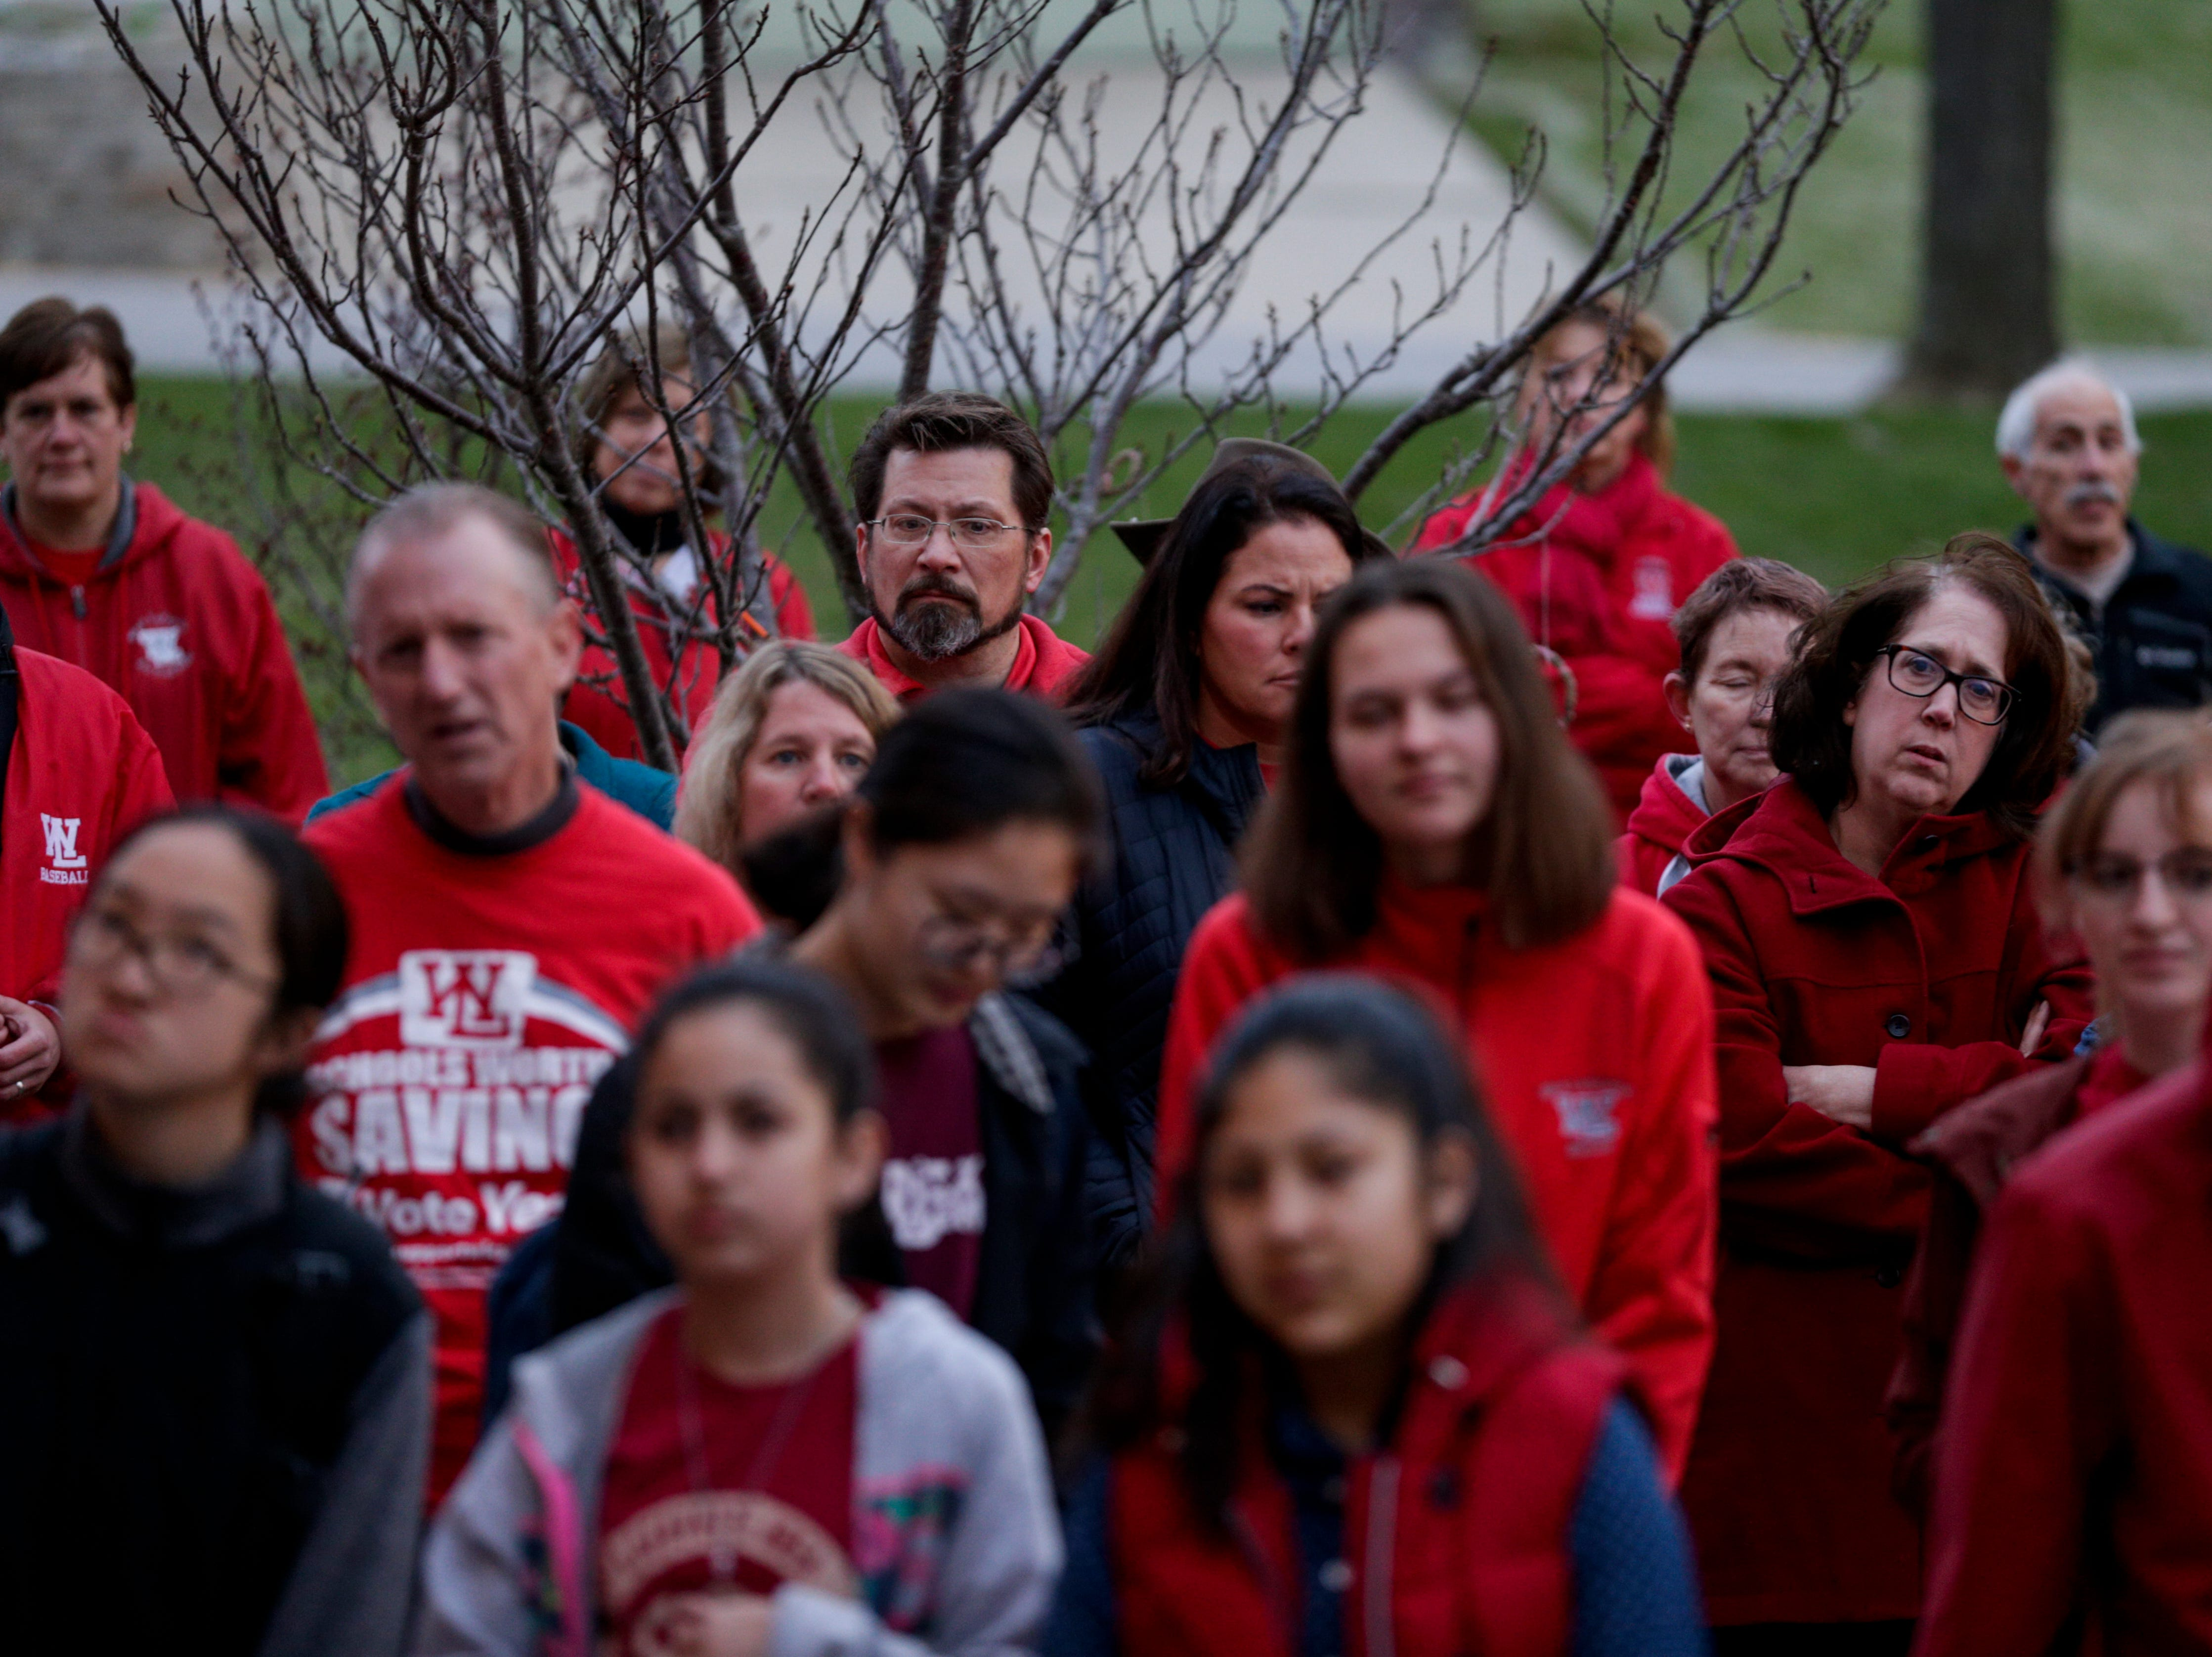 Teachers and community members listen to Dr. Rocky D. Killion, West Lafayette superintendent, speak during a gathering of teachers outside of West Lafayette Jr./Sr. High School, Wednesday, April 10, 2019, in West Lafayette. Greater Lafayette teachers and community members gathered outside schools before walking in to demand teacher salary raises.(Nikos Frazier   Journal & Courier)